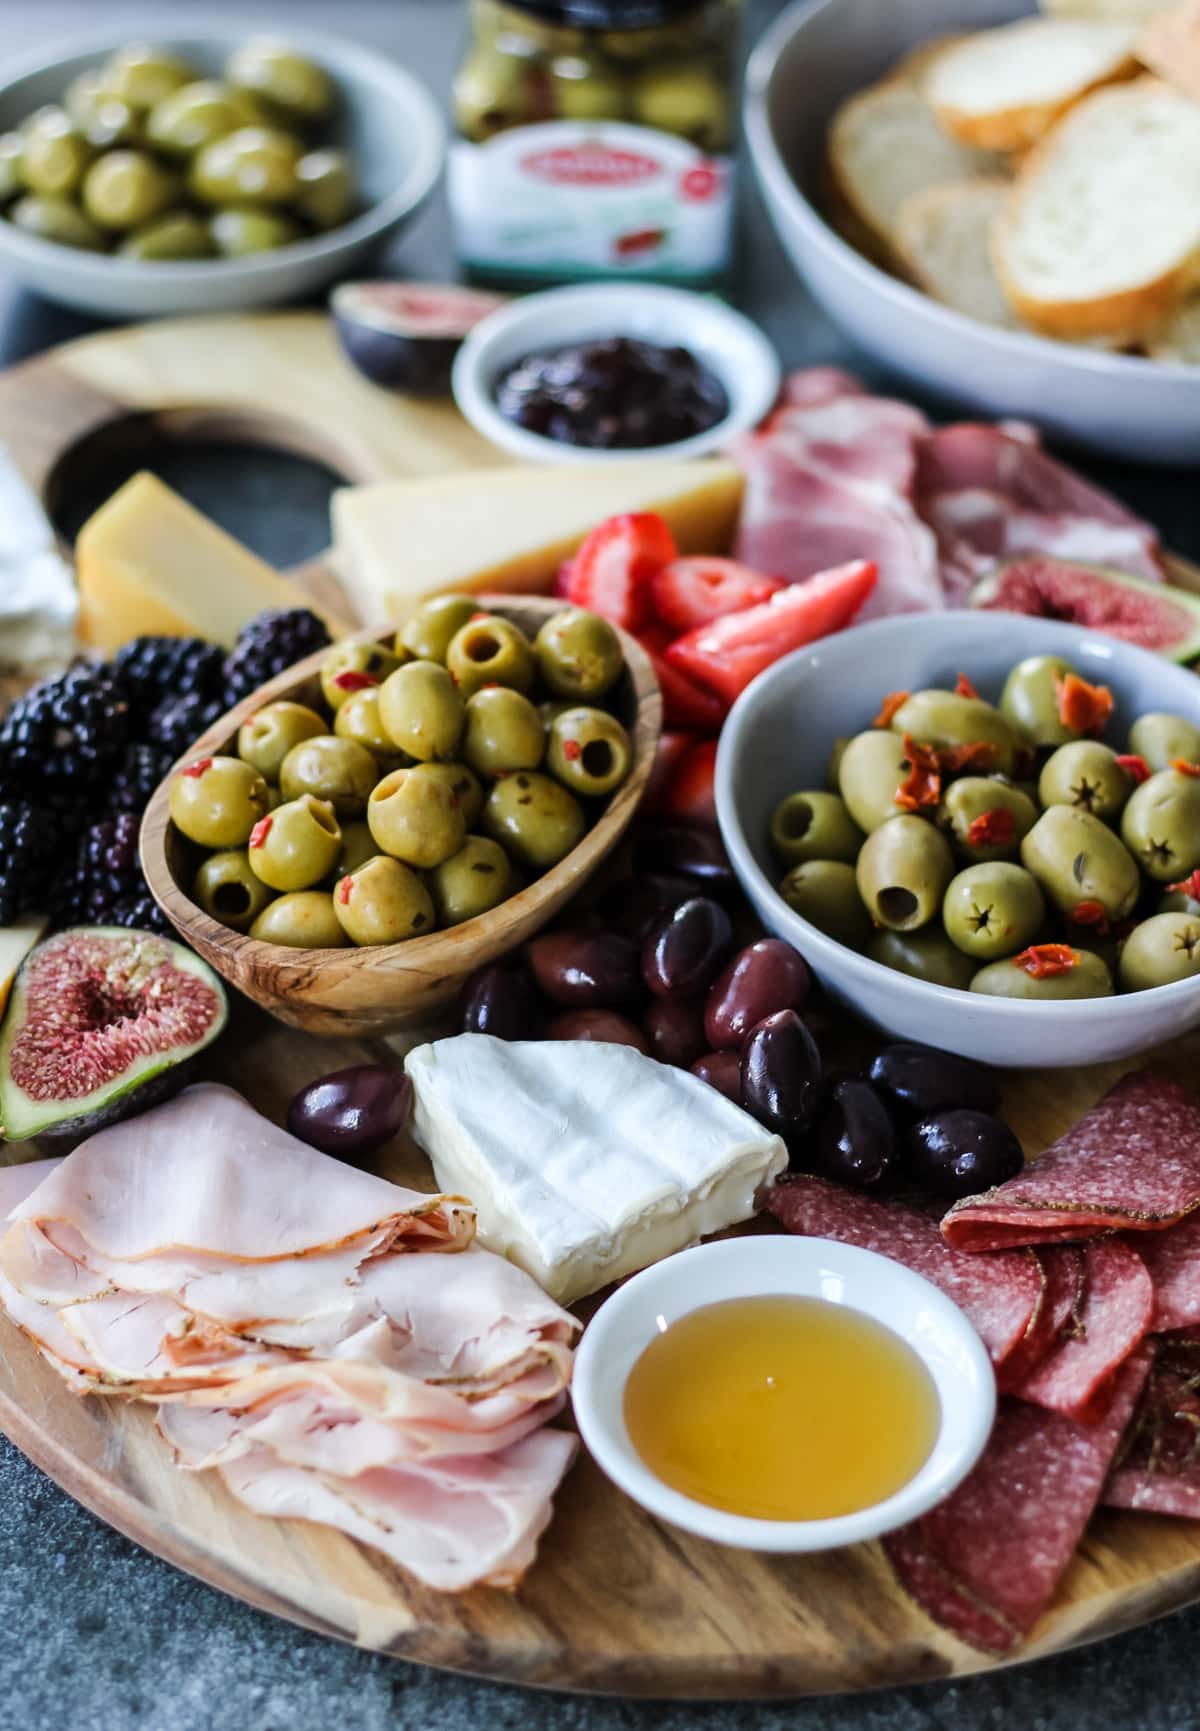 a charcuterie board loaded with green olives, kalamata olives, fresh figs, brie cheese, deli meats, honey, cheese and blackberries